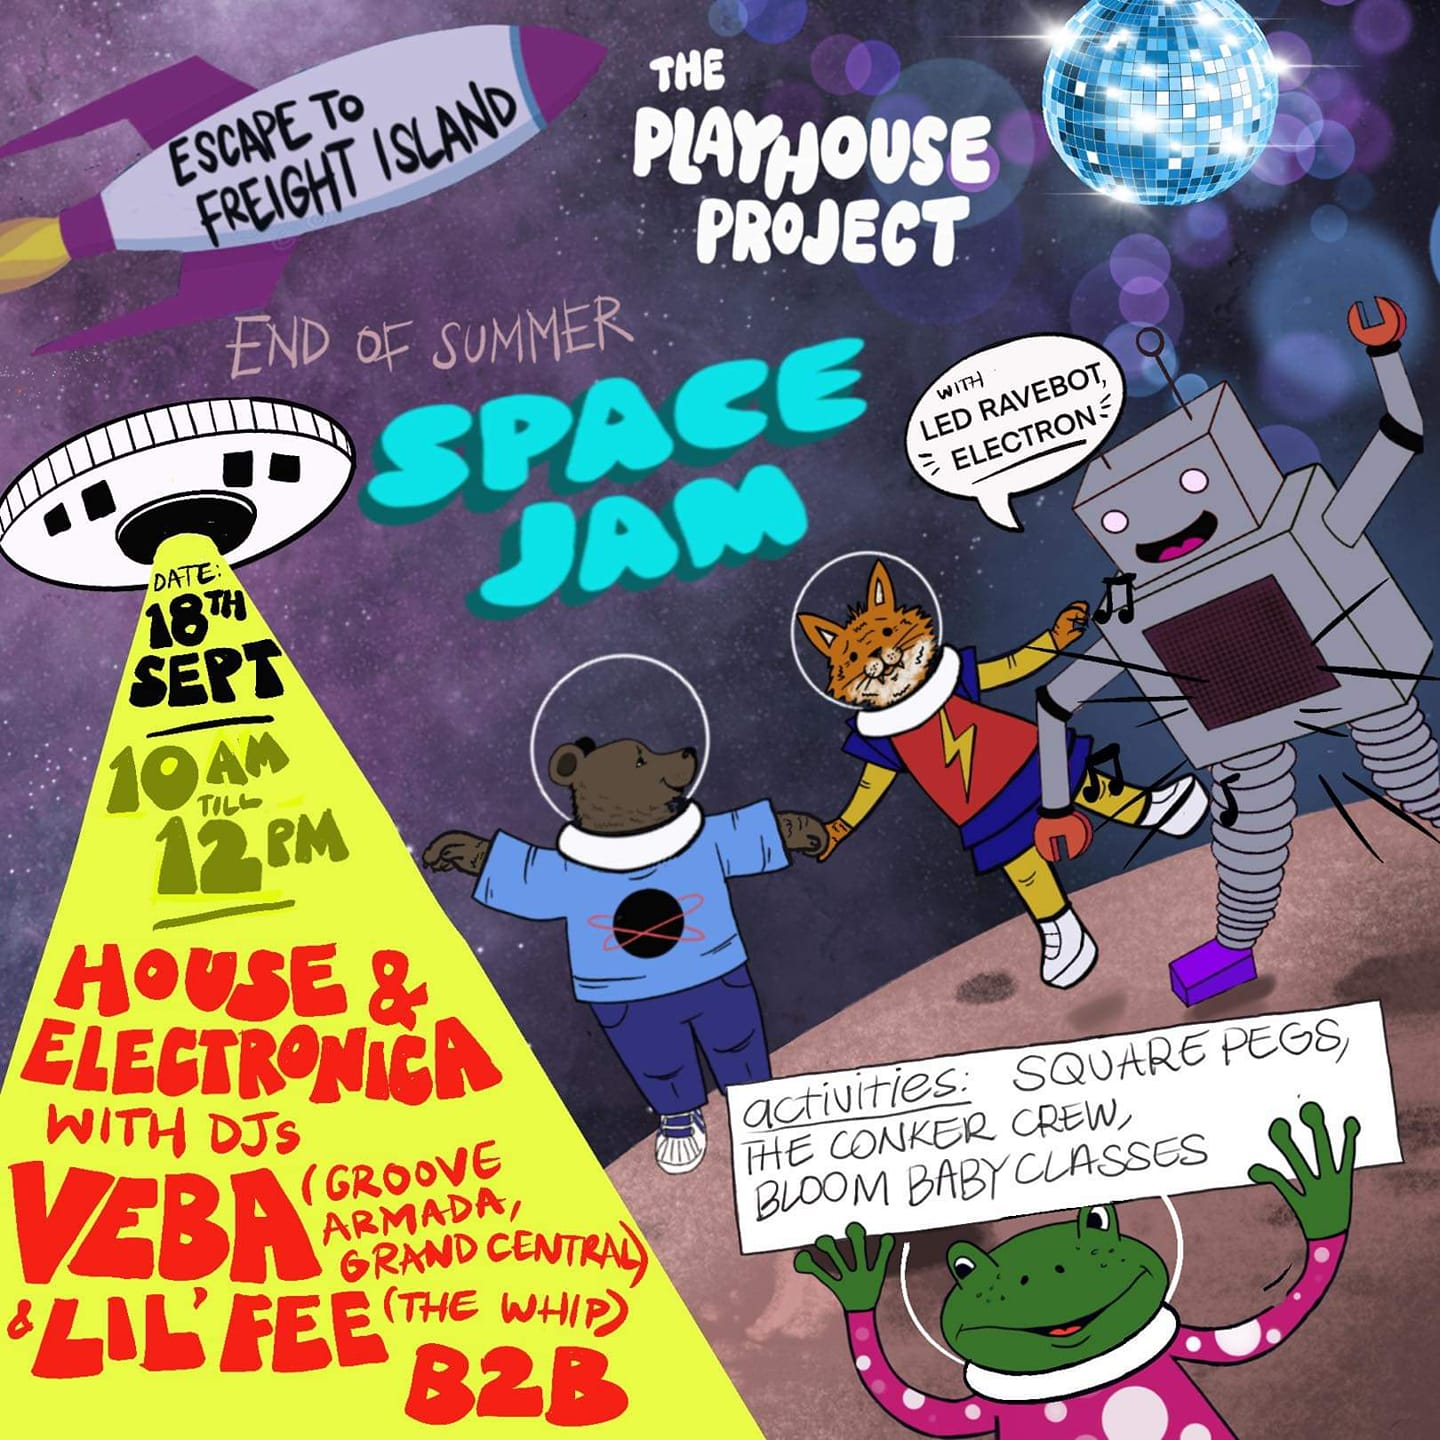 End of Summer Family Space Jam - Escape to Freight Island